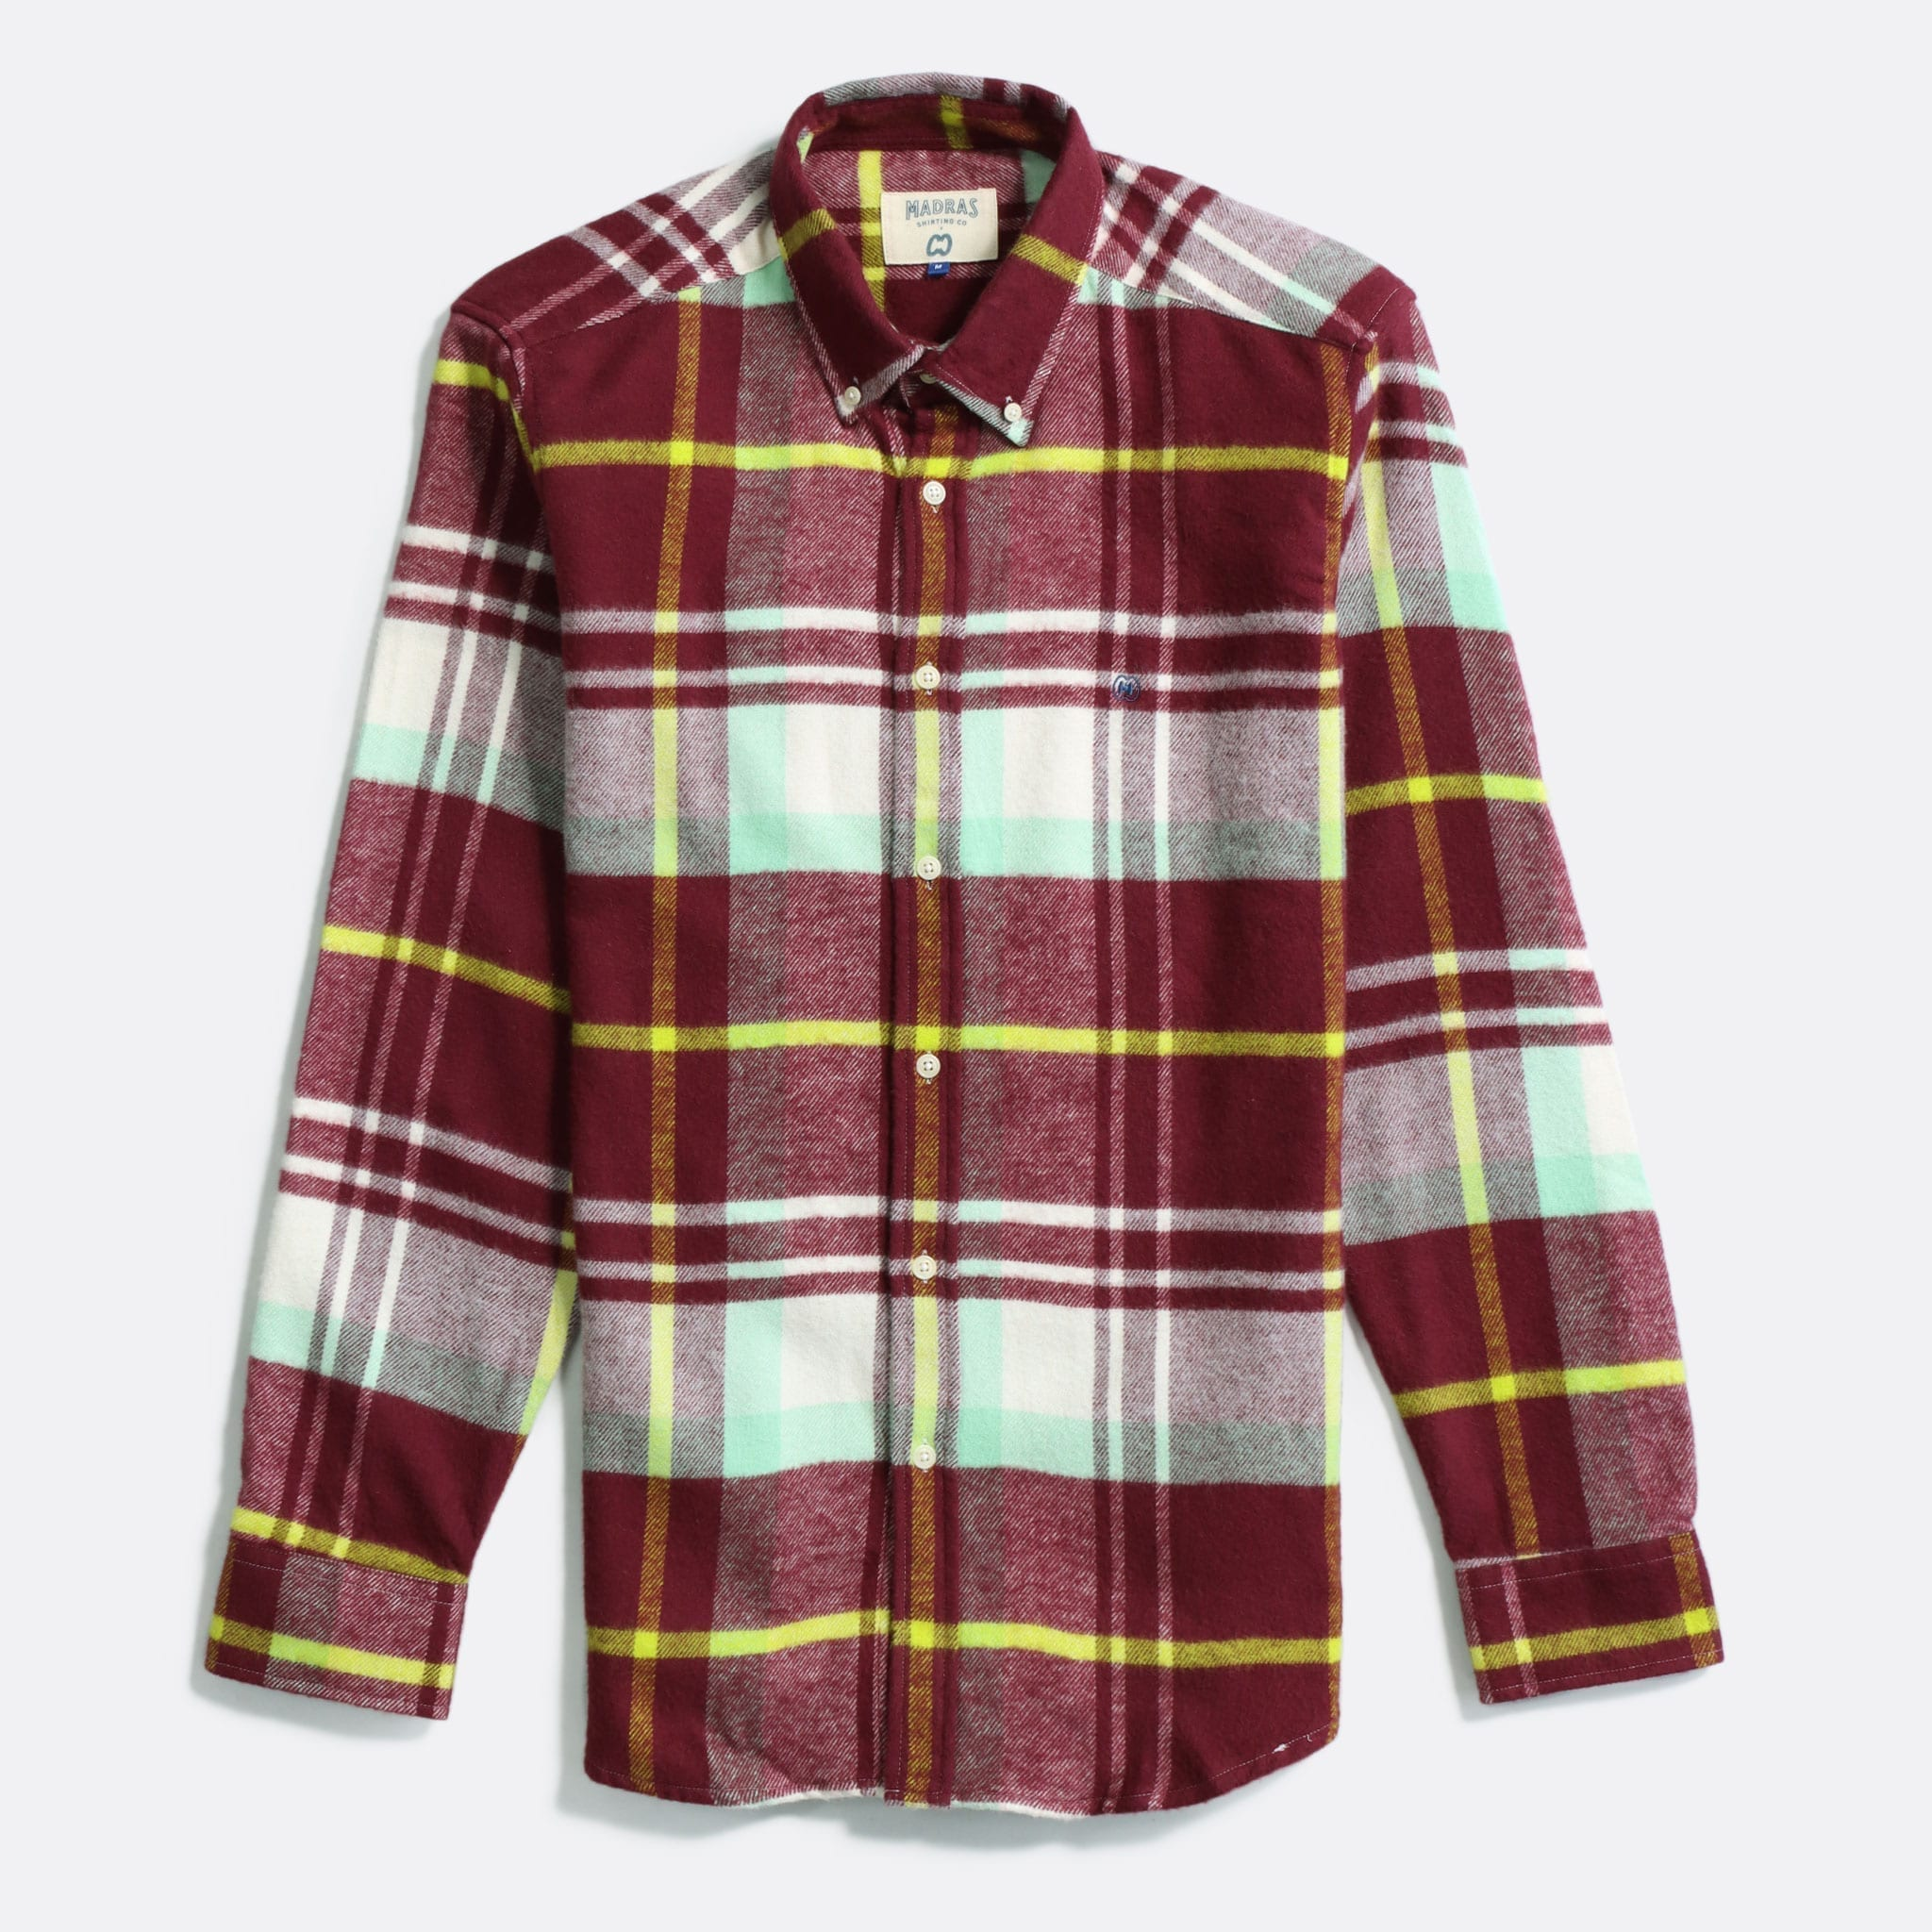 MSCo x Casual Co – Mod Button Down Long Sleeve Shirt a Burgundy Check Up-Cycled Cotton Flannel Fabric